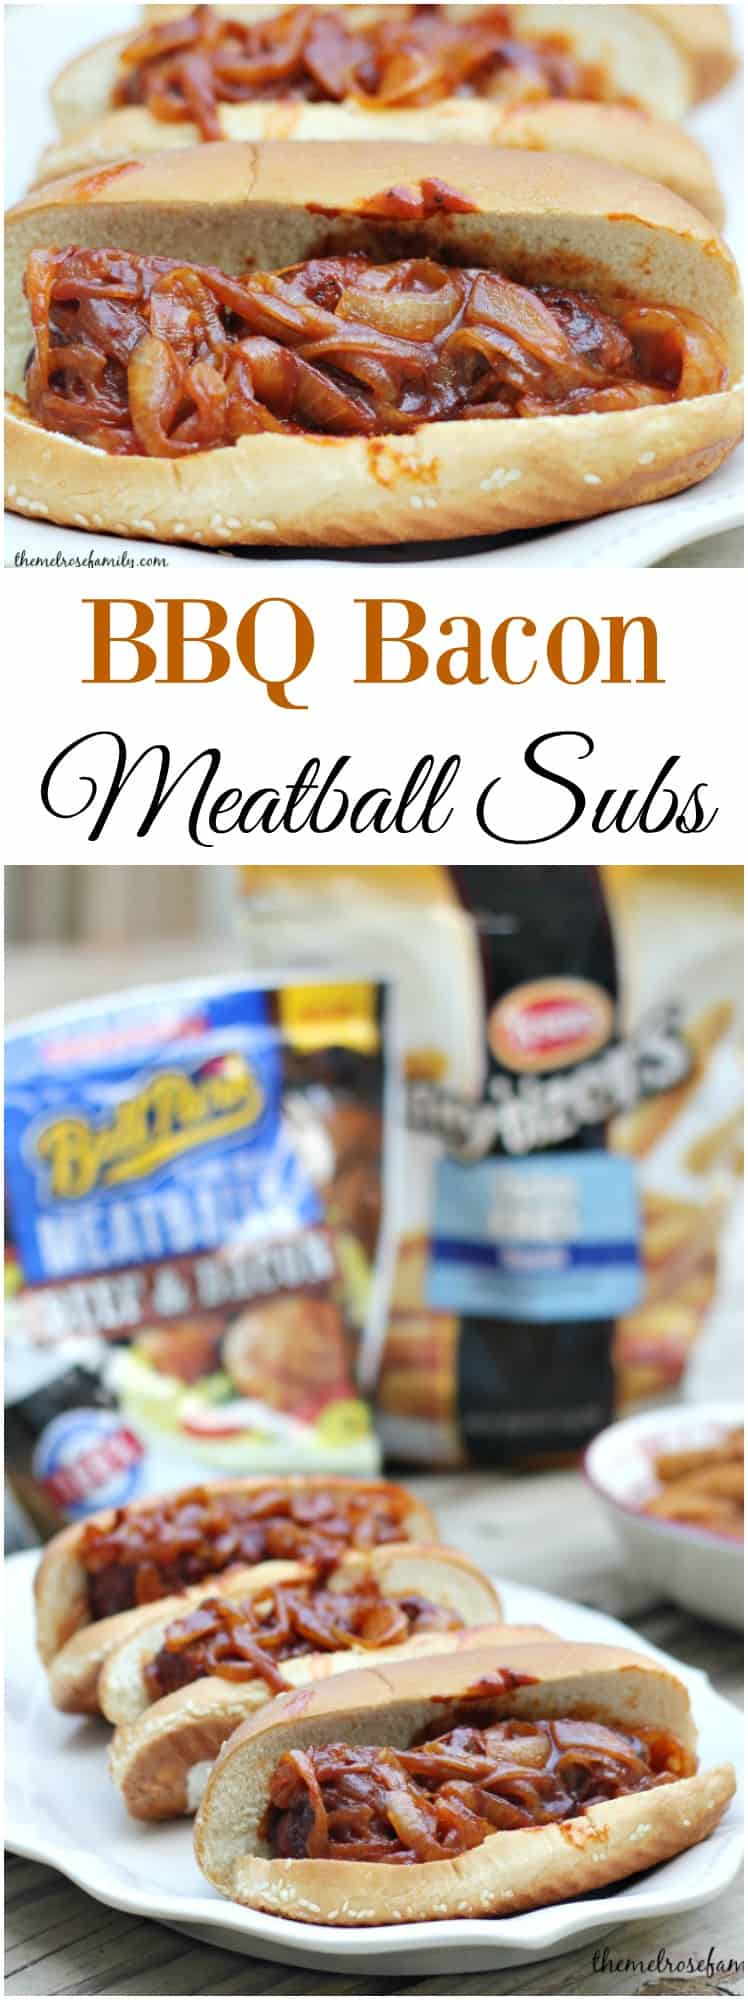 Looking for an easy and flavorful game day recipe? Try these BBQ Bacon Meatball Subs for a crowd or in a pinch.